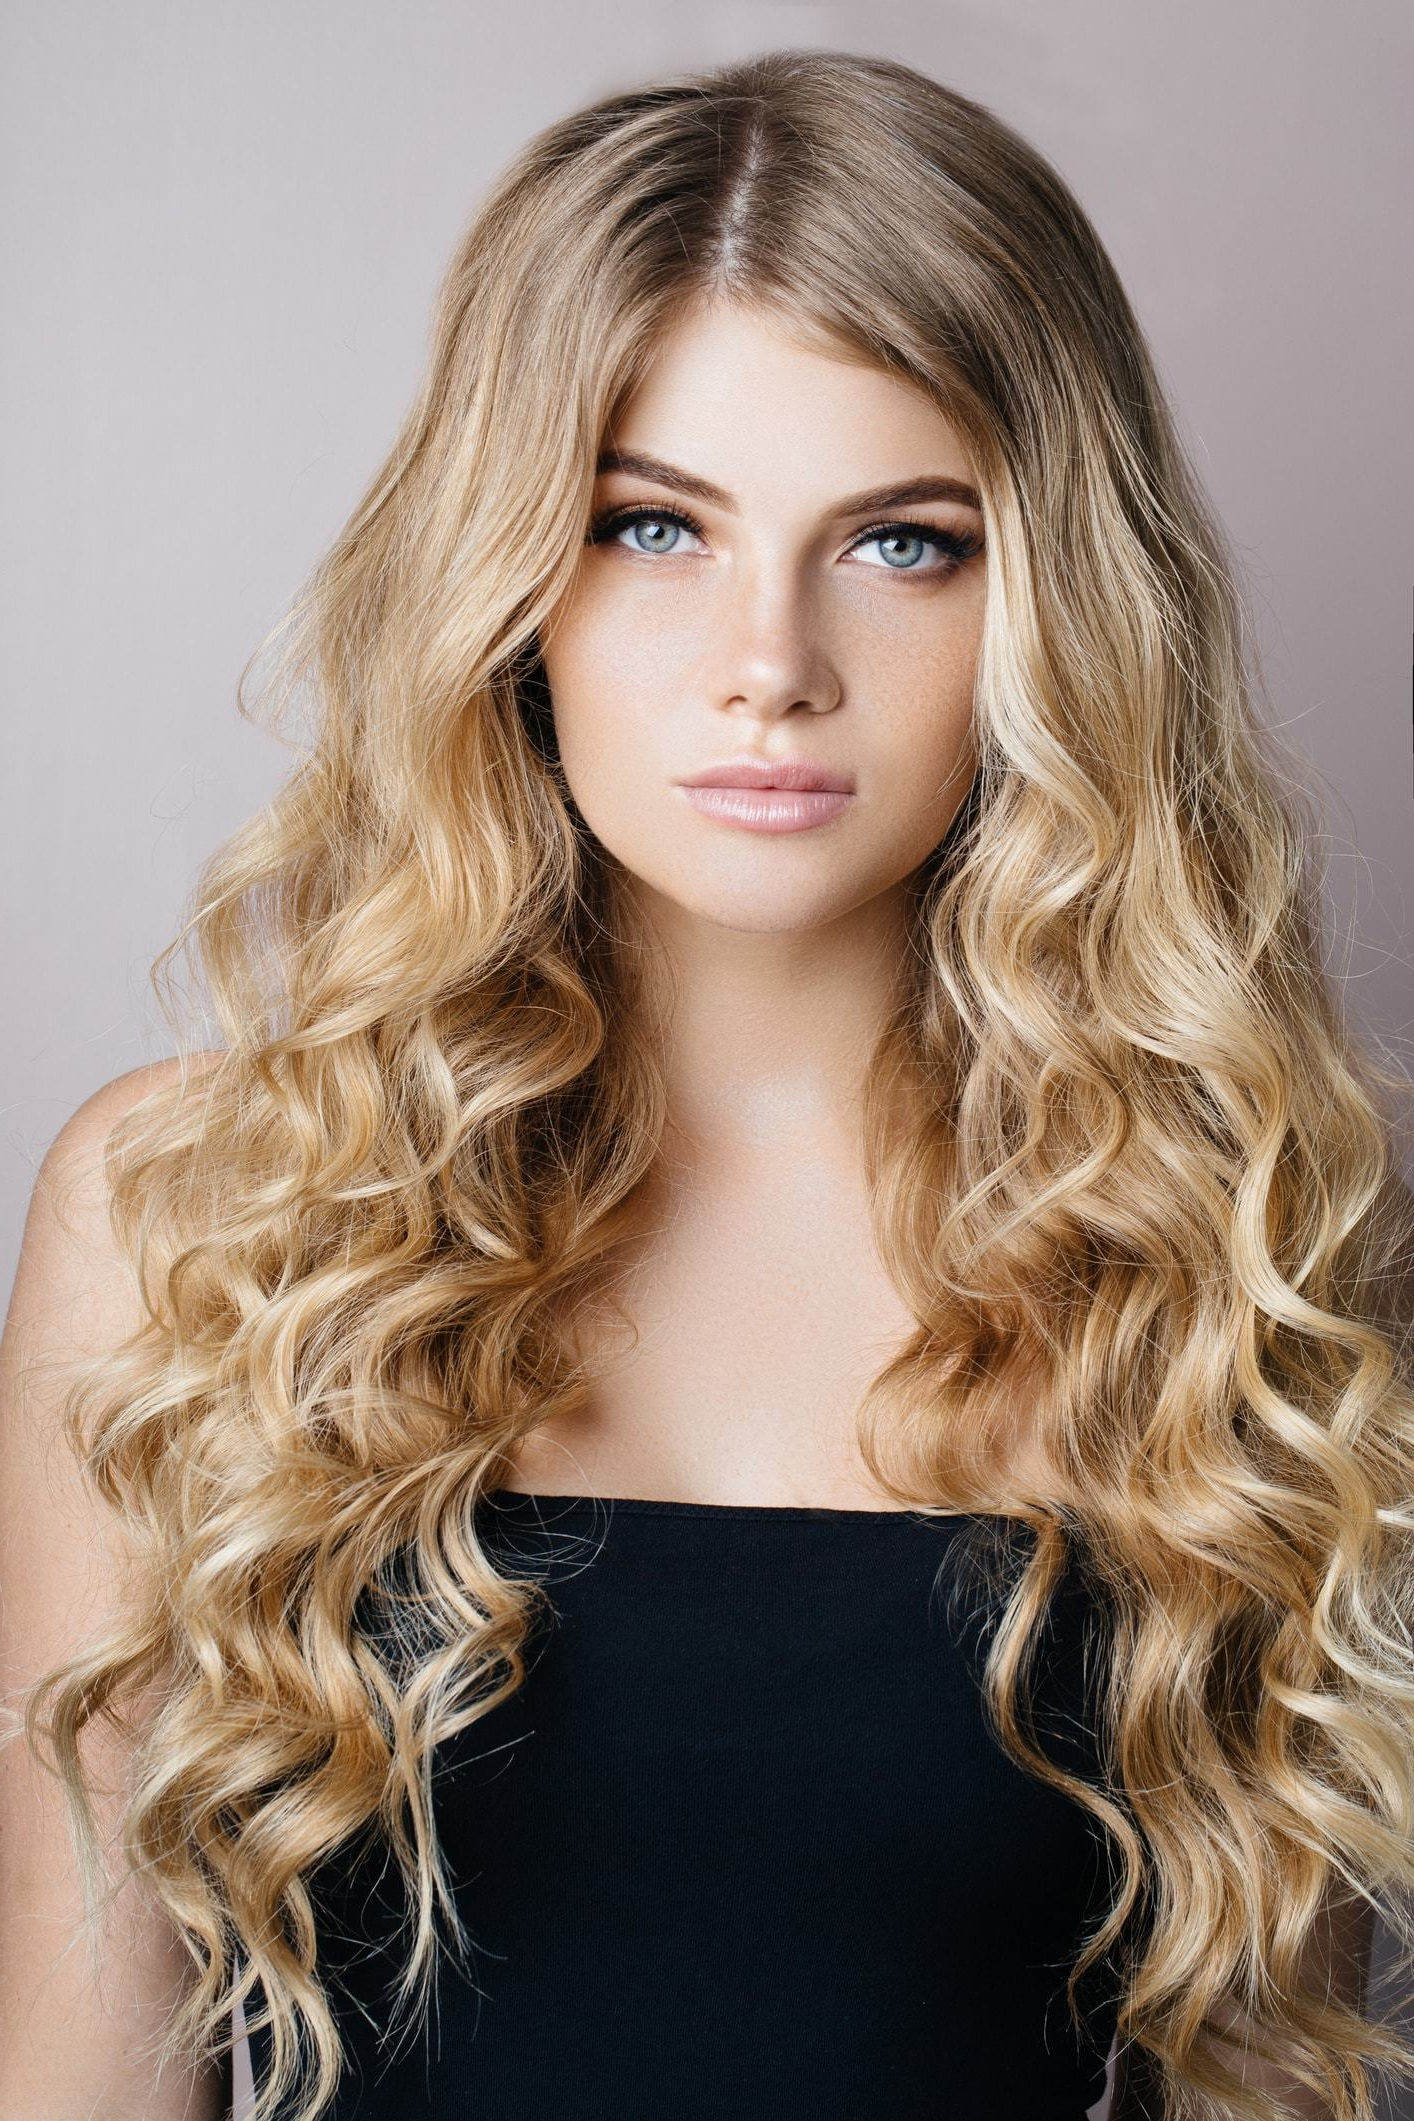 Best And Newest Layered Ringlets Hairstyles With Regard To Curly Hairstyles For Long Hair: 19 Kinds Of Curls To Consider (View 4 of 20)